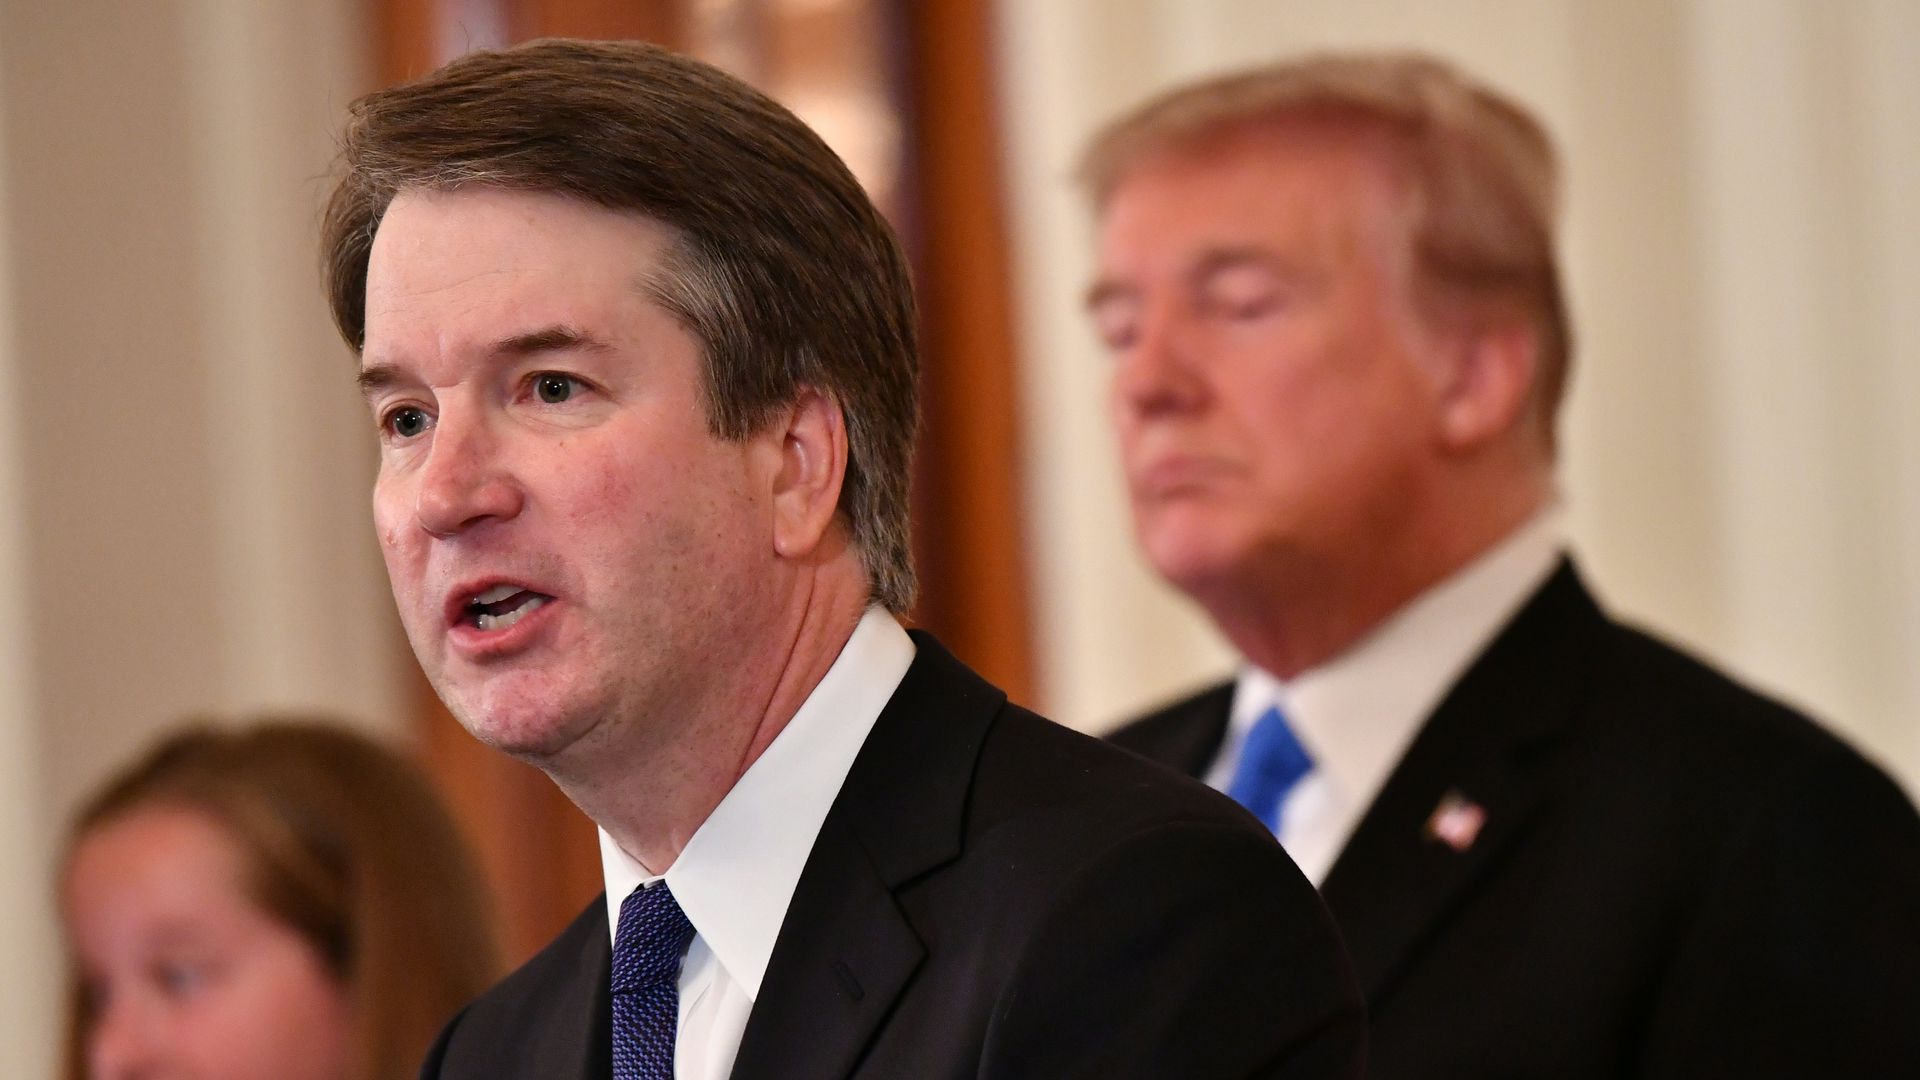 Brett Kavanaugh and President Trump